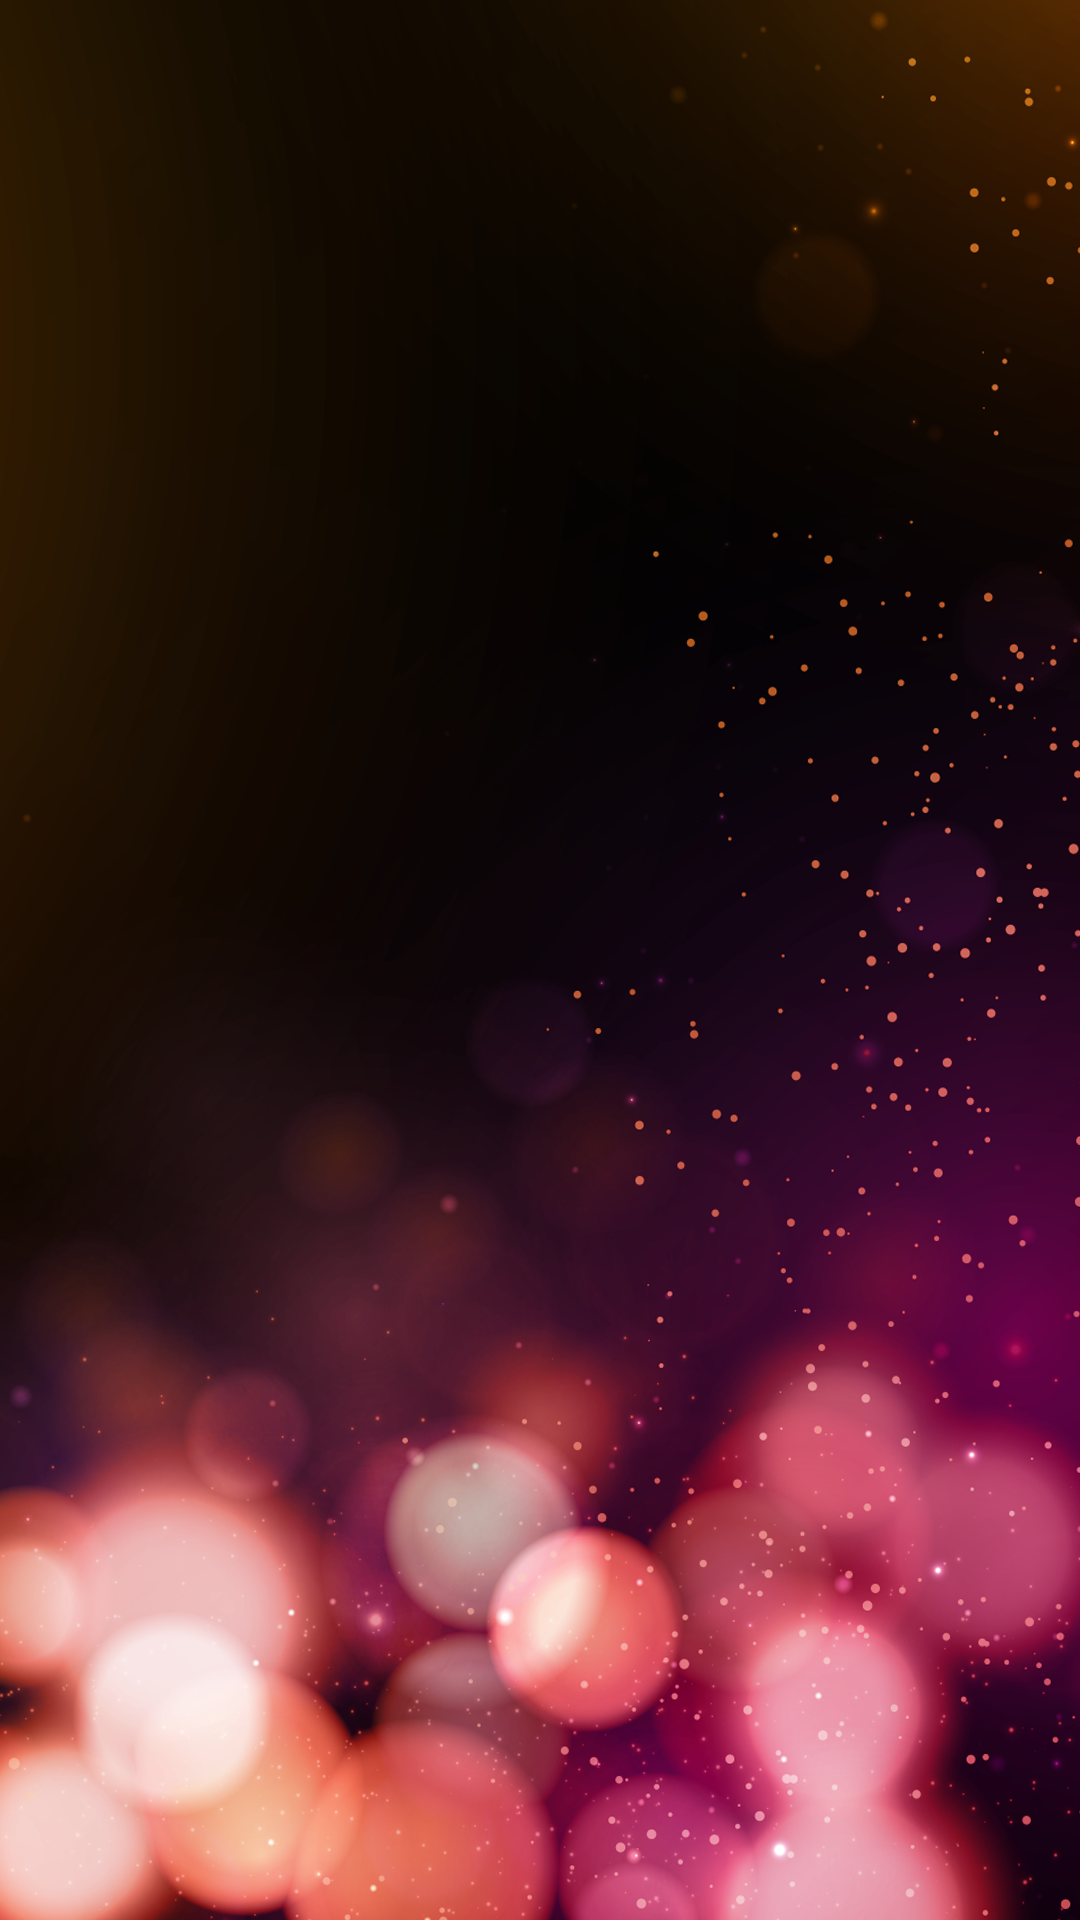 free hd fairytale lights iphone wallpaper for download 0093